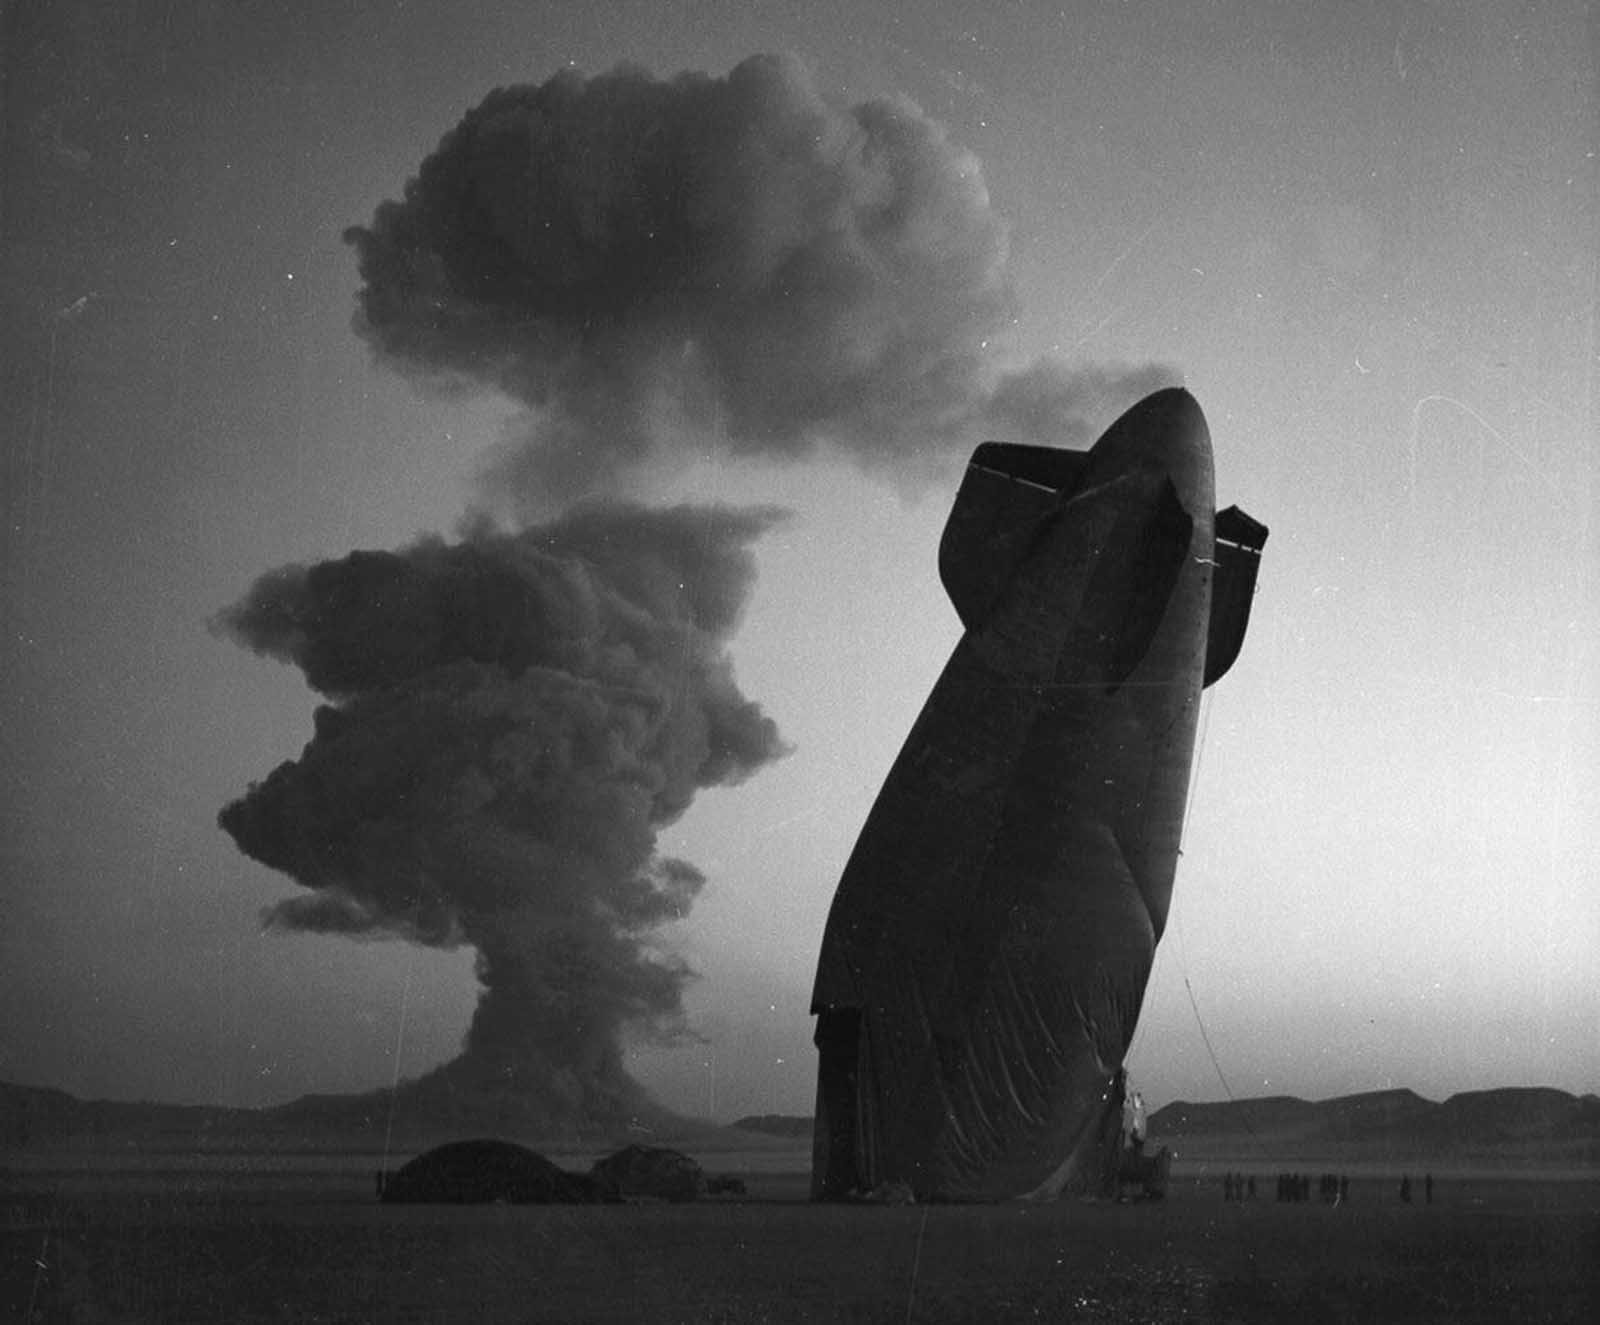 At a Nevada nuclear test site test Site, on August 7, 1957, the tail of a U.S. Navy Blimp is photographed with the cloud of a nuclear blast in the background. The Blimp was in temporary free flight in excess of five miles from ground zero when it collapsed from the shock wave of the blast. The airship was unmanned and was used in military effects experiments. Navy personnel on the ground in the vicinity of the experimental area were unhurt.